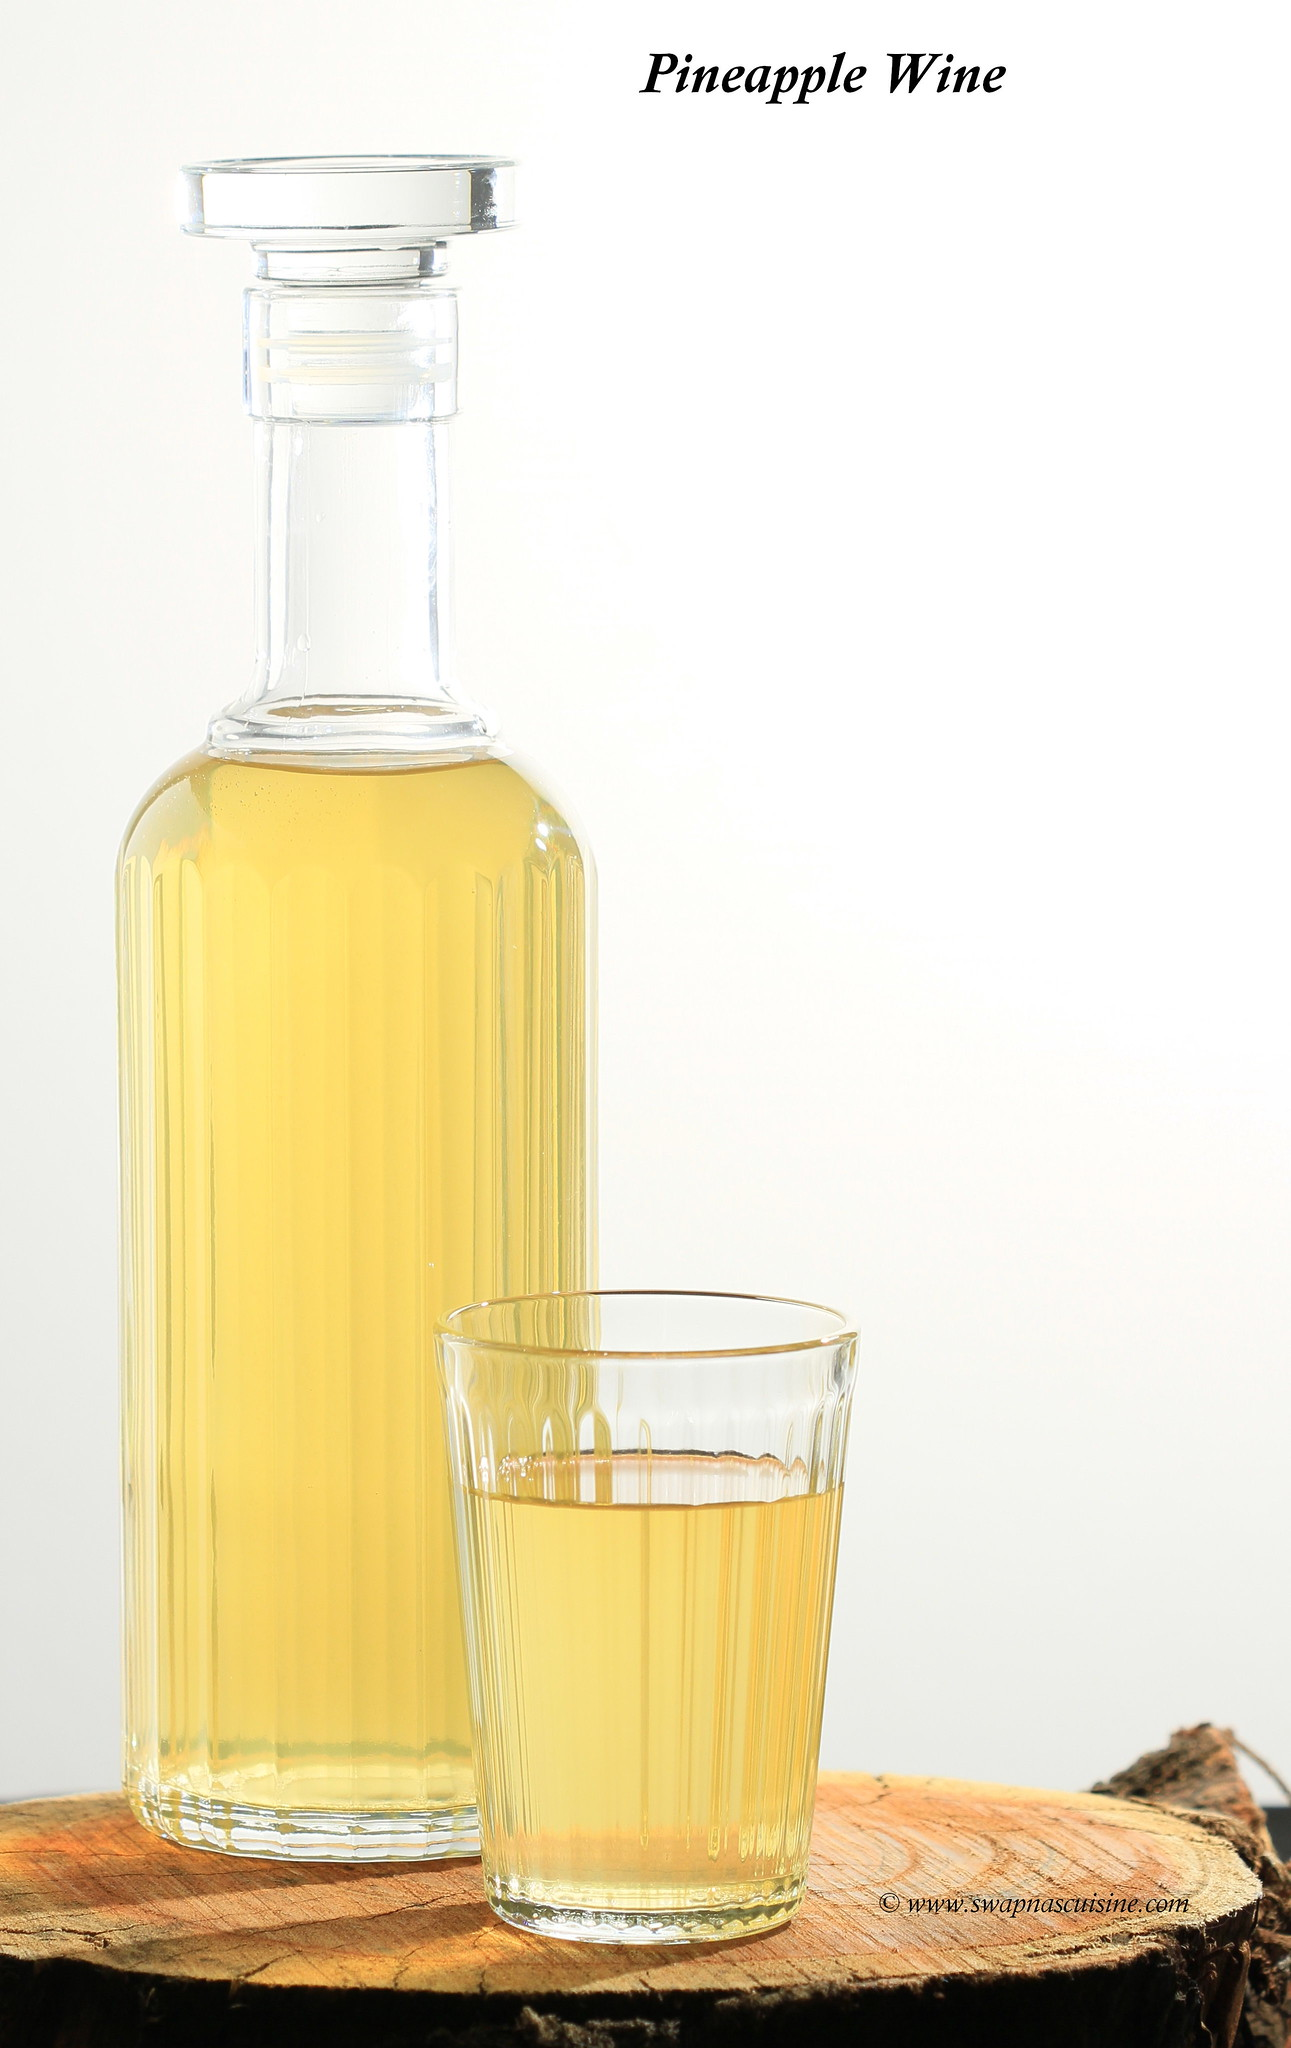 How to make Pineapple Wine